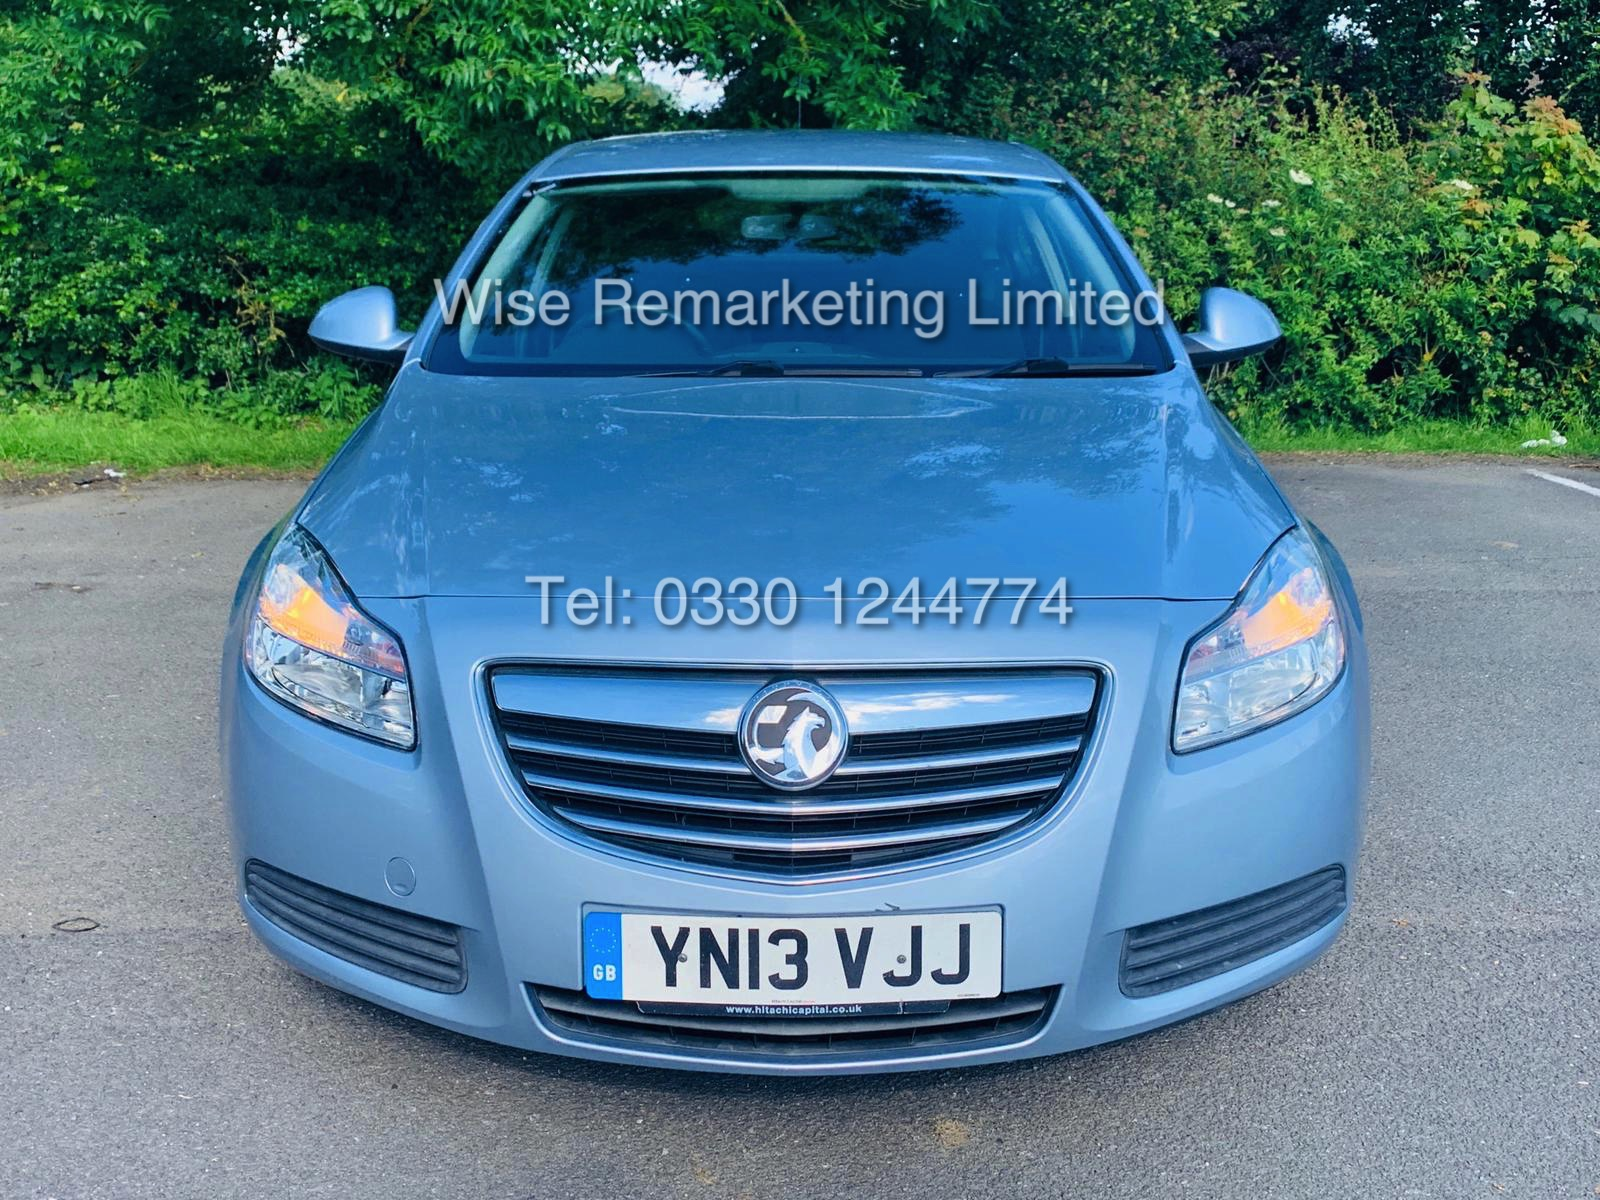 VAUXHALL INSIGNIA 2.0 CDTI ECOFLEX ES 2013 *FSH* 1 OWNER FROM NEW - Image 10 of 30